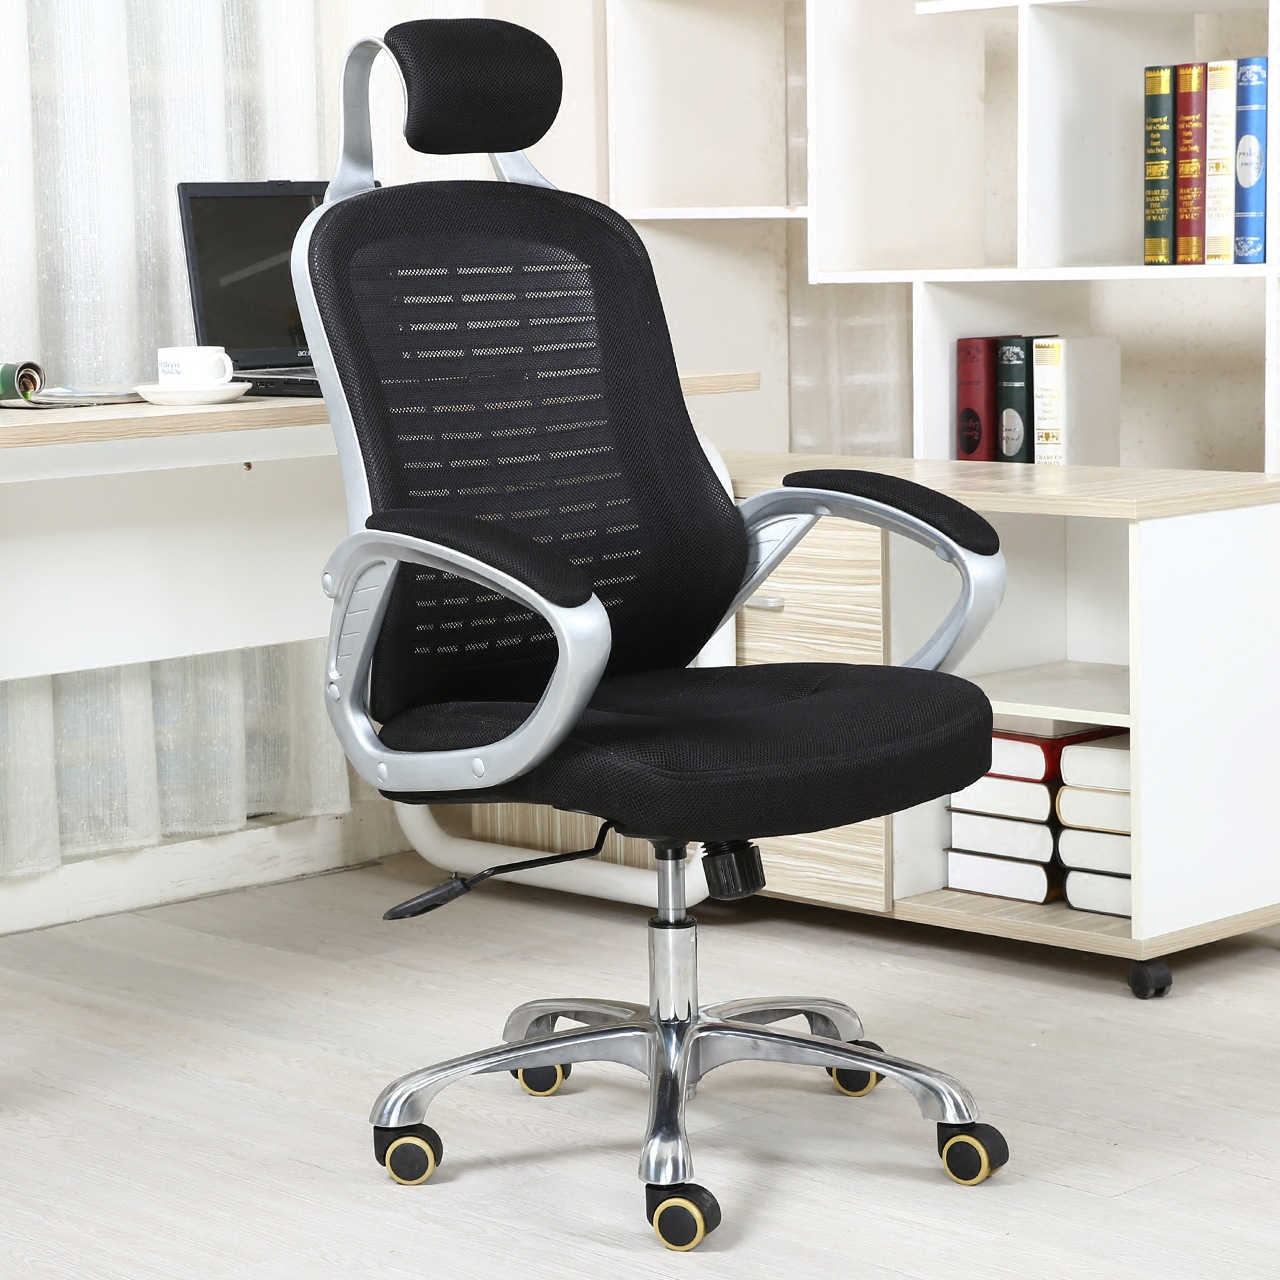 High Quality Simple Office Boss Chair Lifting Leisure Swivel Chair Ergonomic Computer Gaming Chair 240340 high quality back pillow office chair 3d handrail function computer household ergonomic chair 360 degree rotating seat